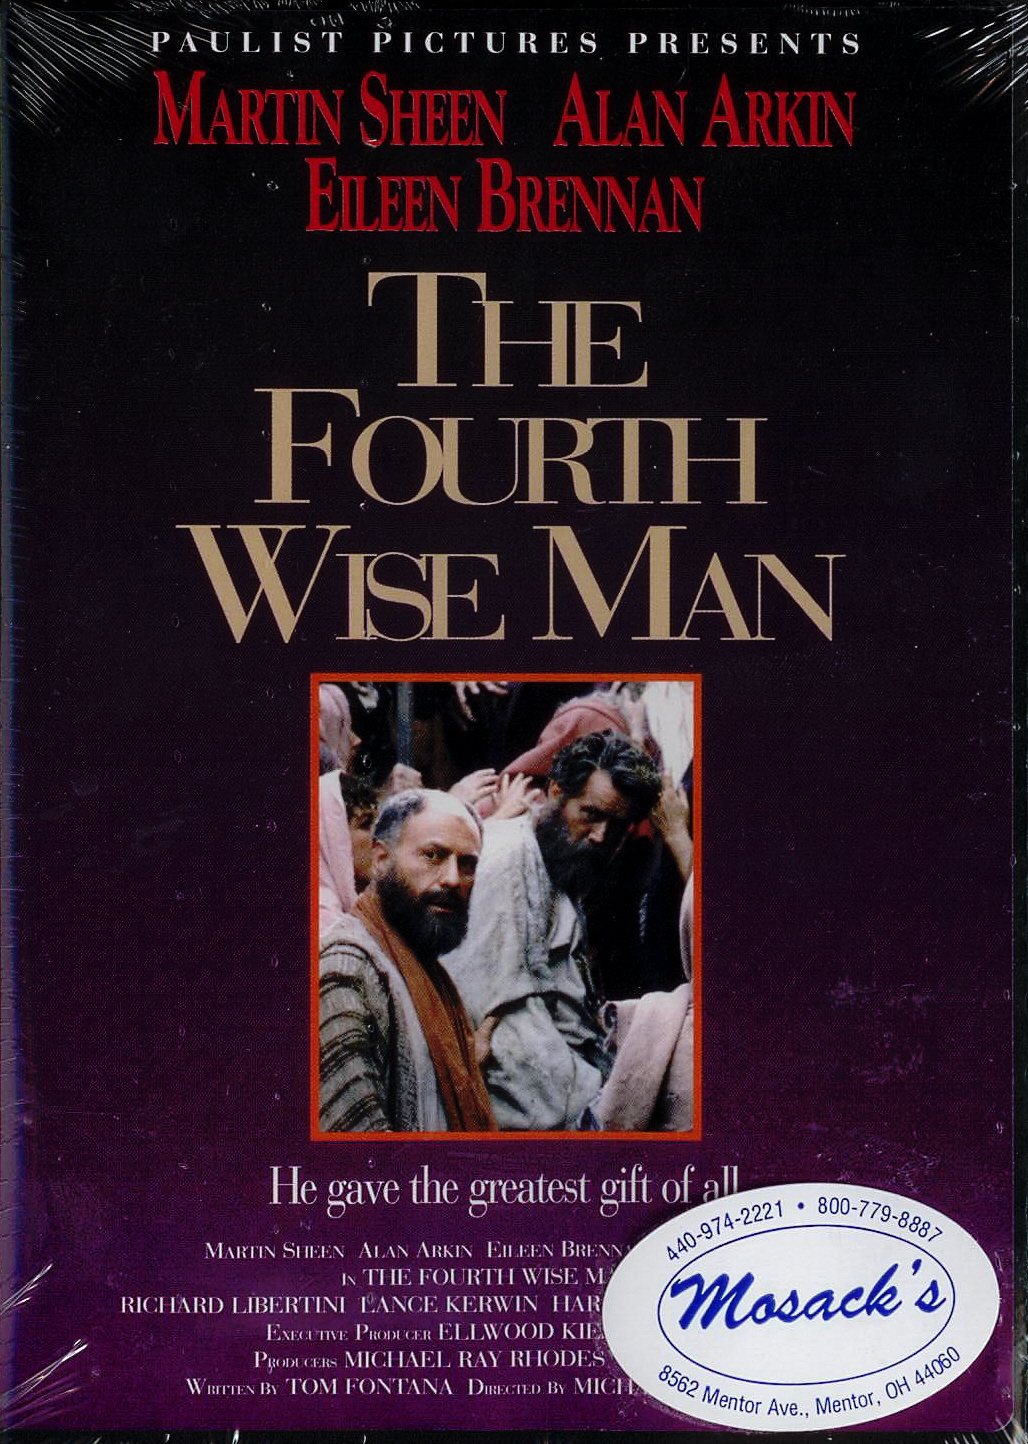 DVD-The Fourth Wise Man, Title; Michael Ray Rhodes, Director